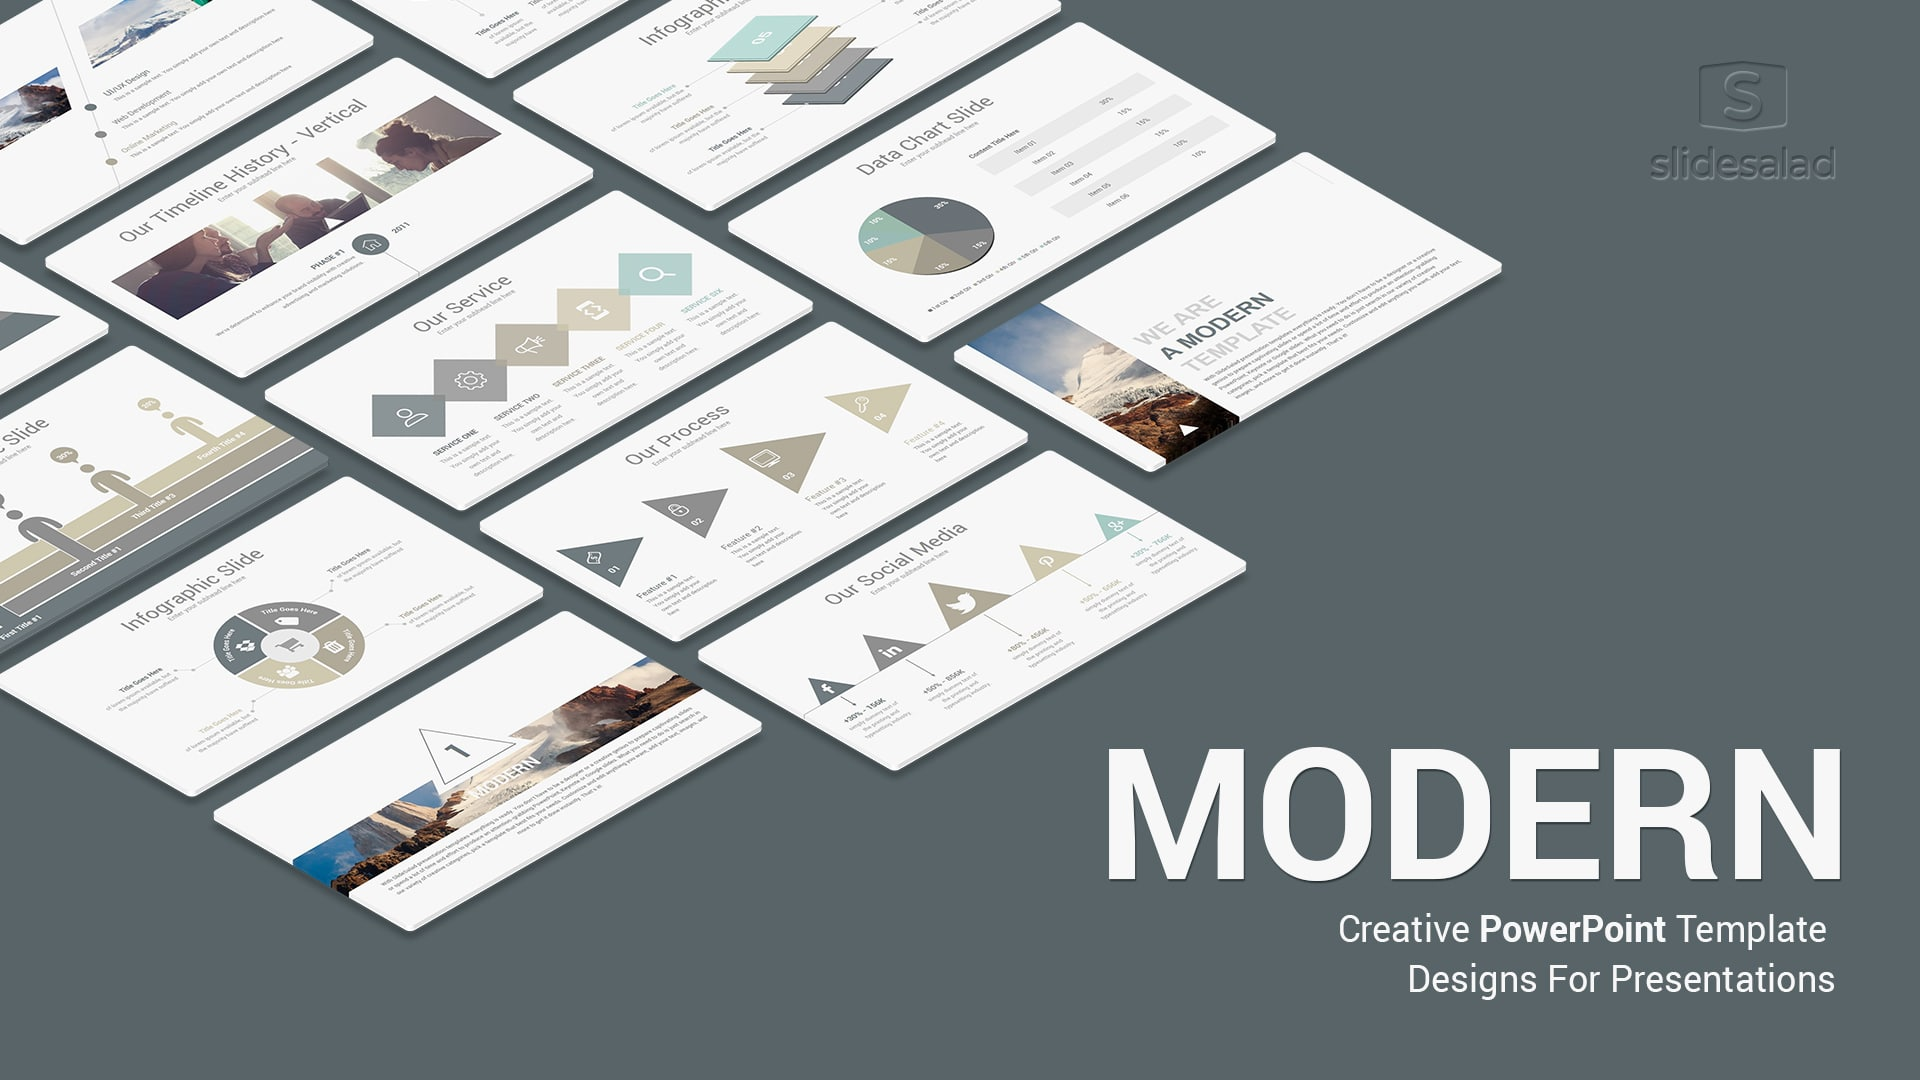 Modern PowerPoint Template for Presentation – Top Selling Modern PPT Templates